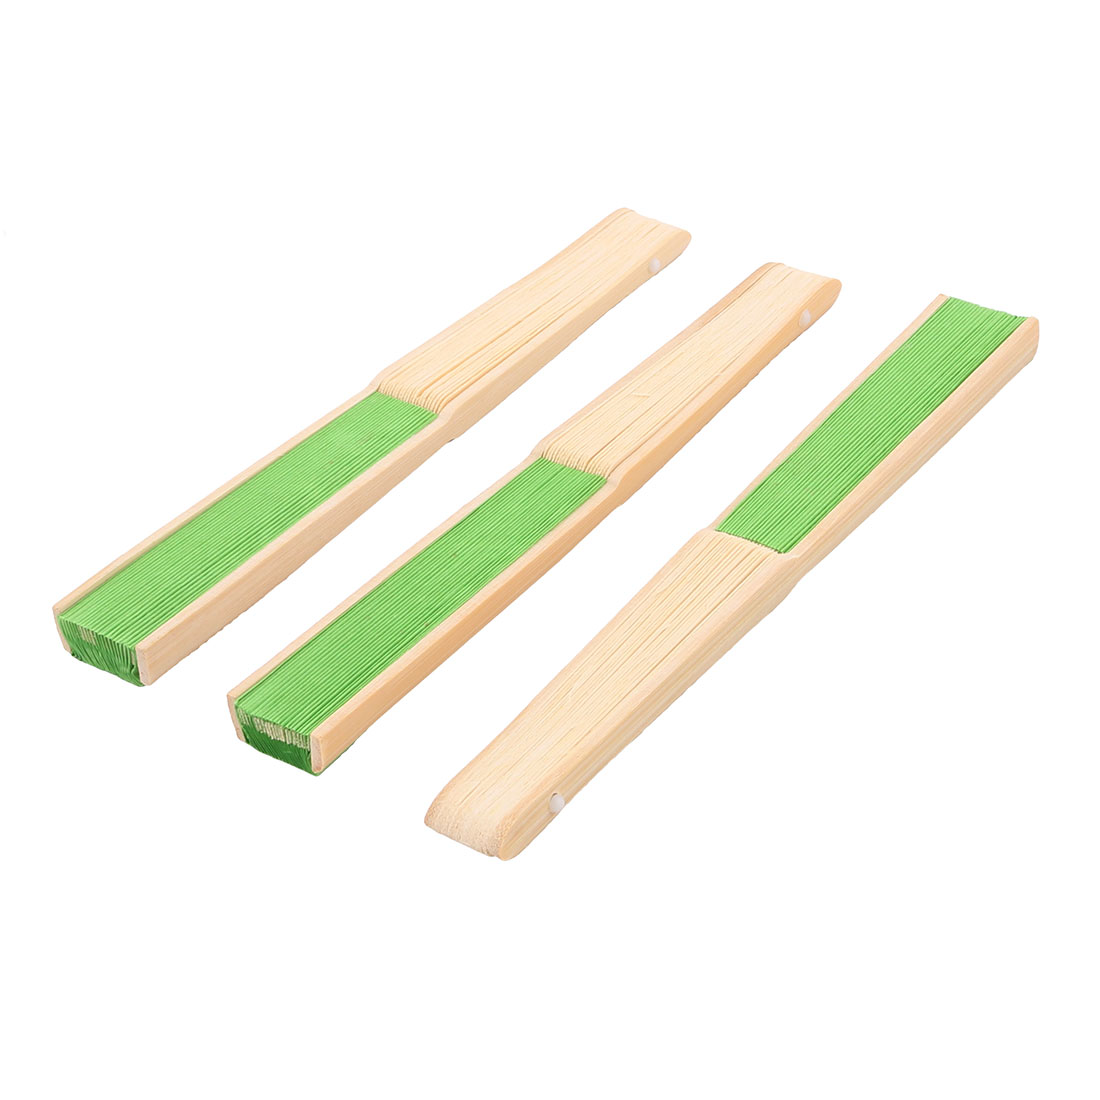 Ladies Wedding Party Bamboo Frame Paper Handheld Folding Hand Fan Green 3pcs